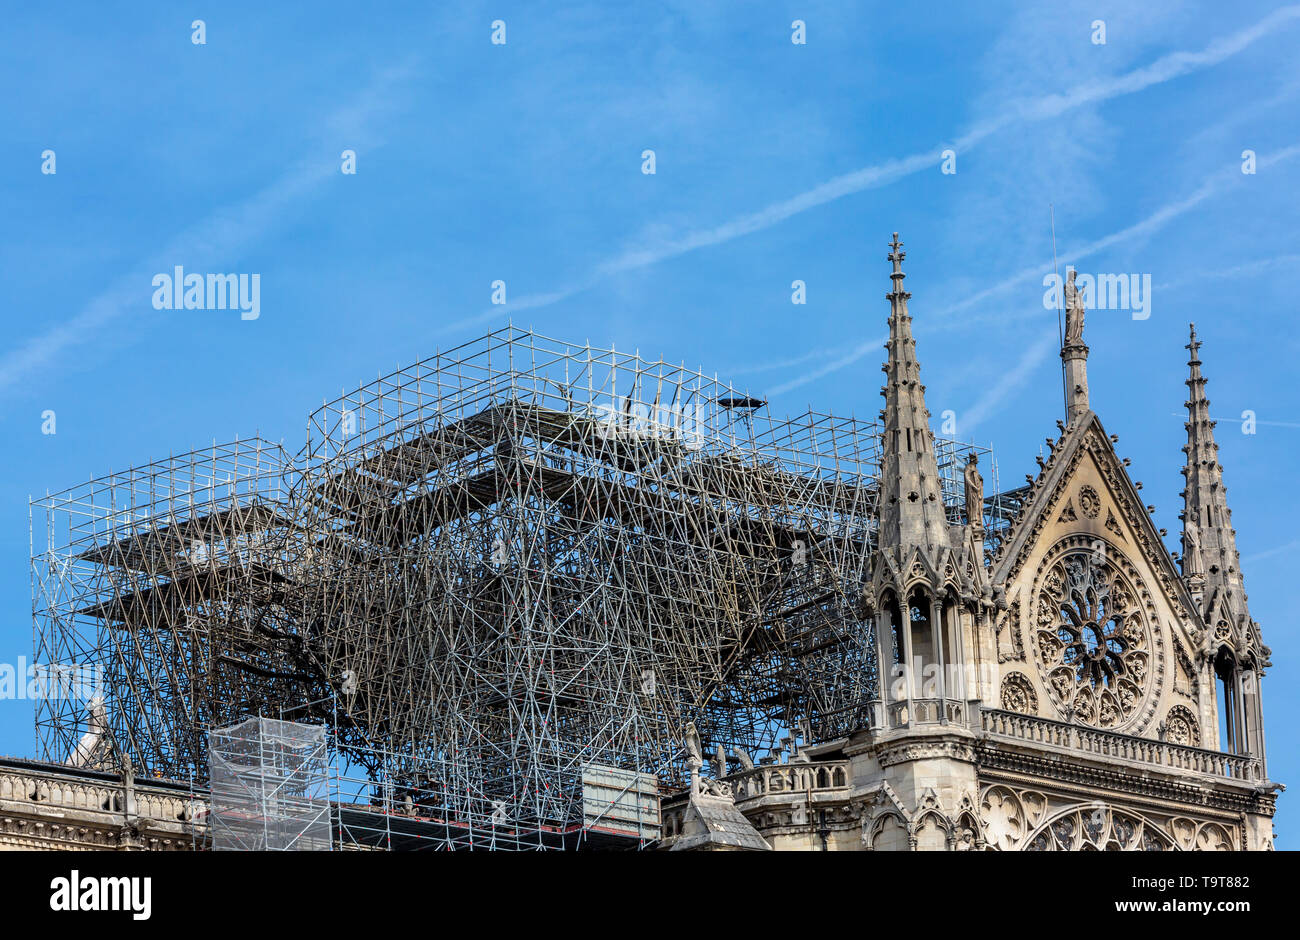 Detail image of the scaffoldings and the remains of Notre Dame Cathedral in Paris after the fire destroyed the whole roof in 15 April 2019.. - Stock Image